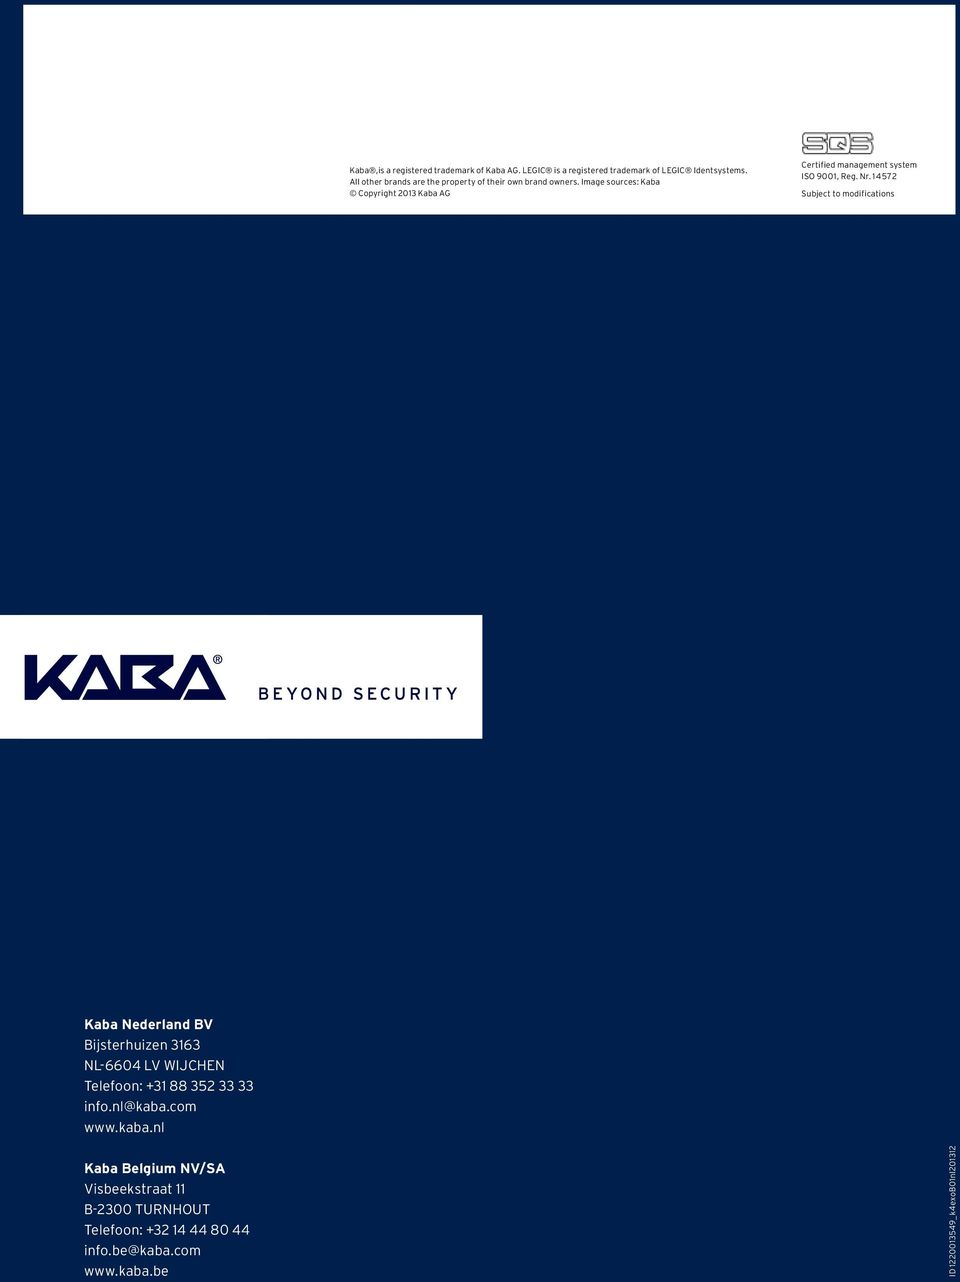 Image sources: Kaba Copyright 2013 Kaba AG Certified management system ISO 9001, Reg. Nr.